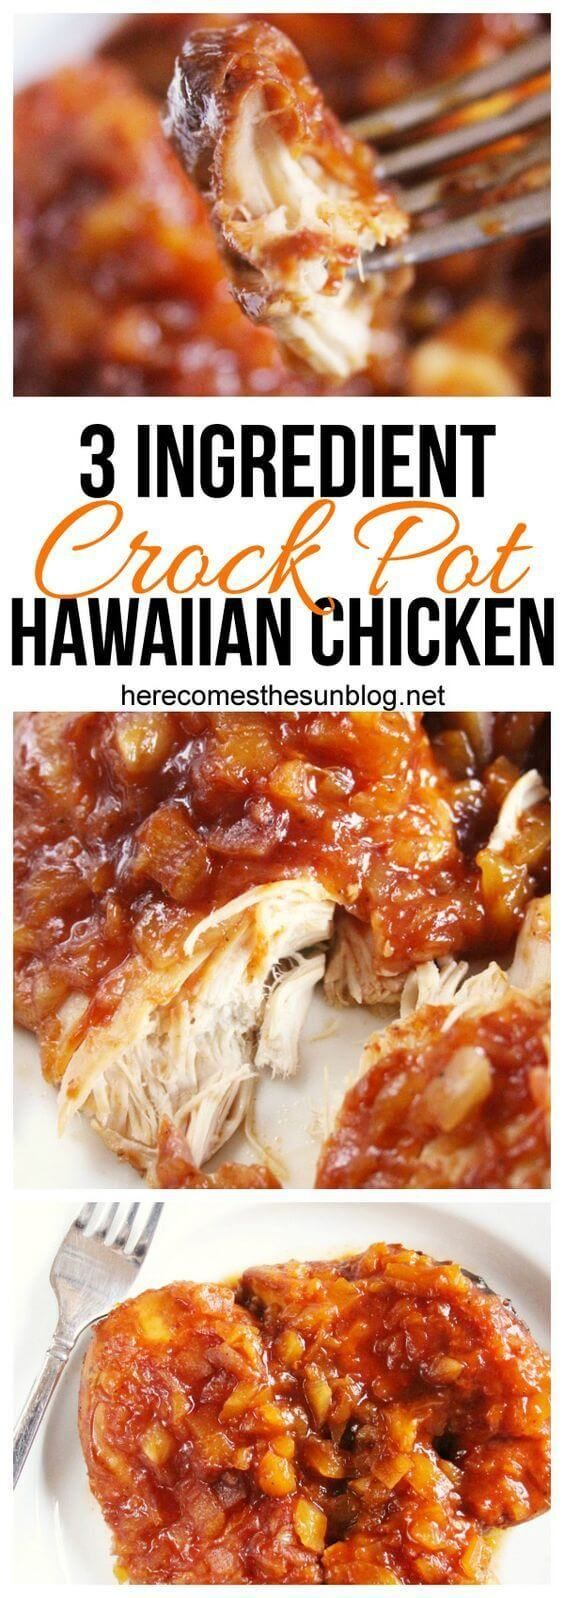 Gluten-Free 3 Ingredient Crock Pot Hawaiian Chicken Recipe